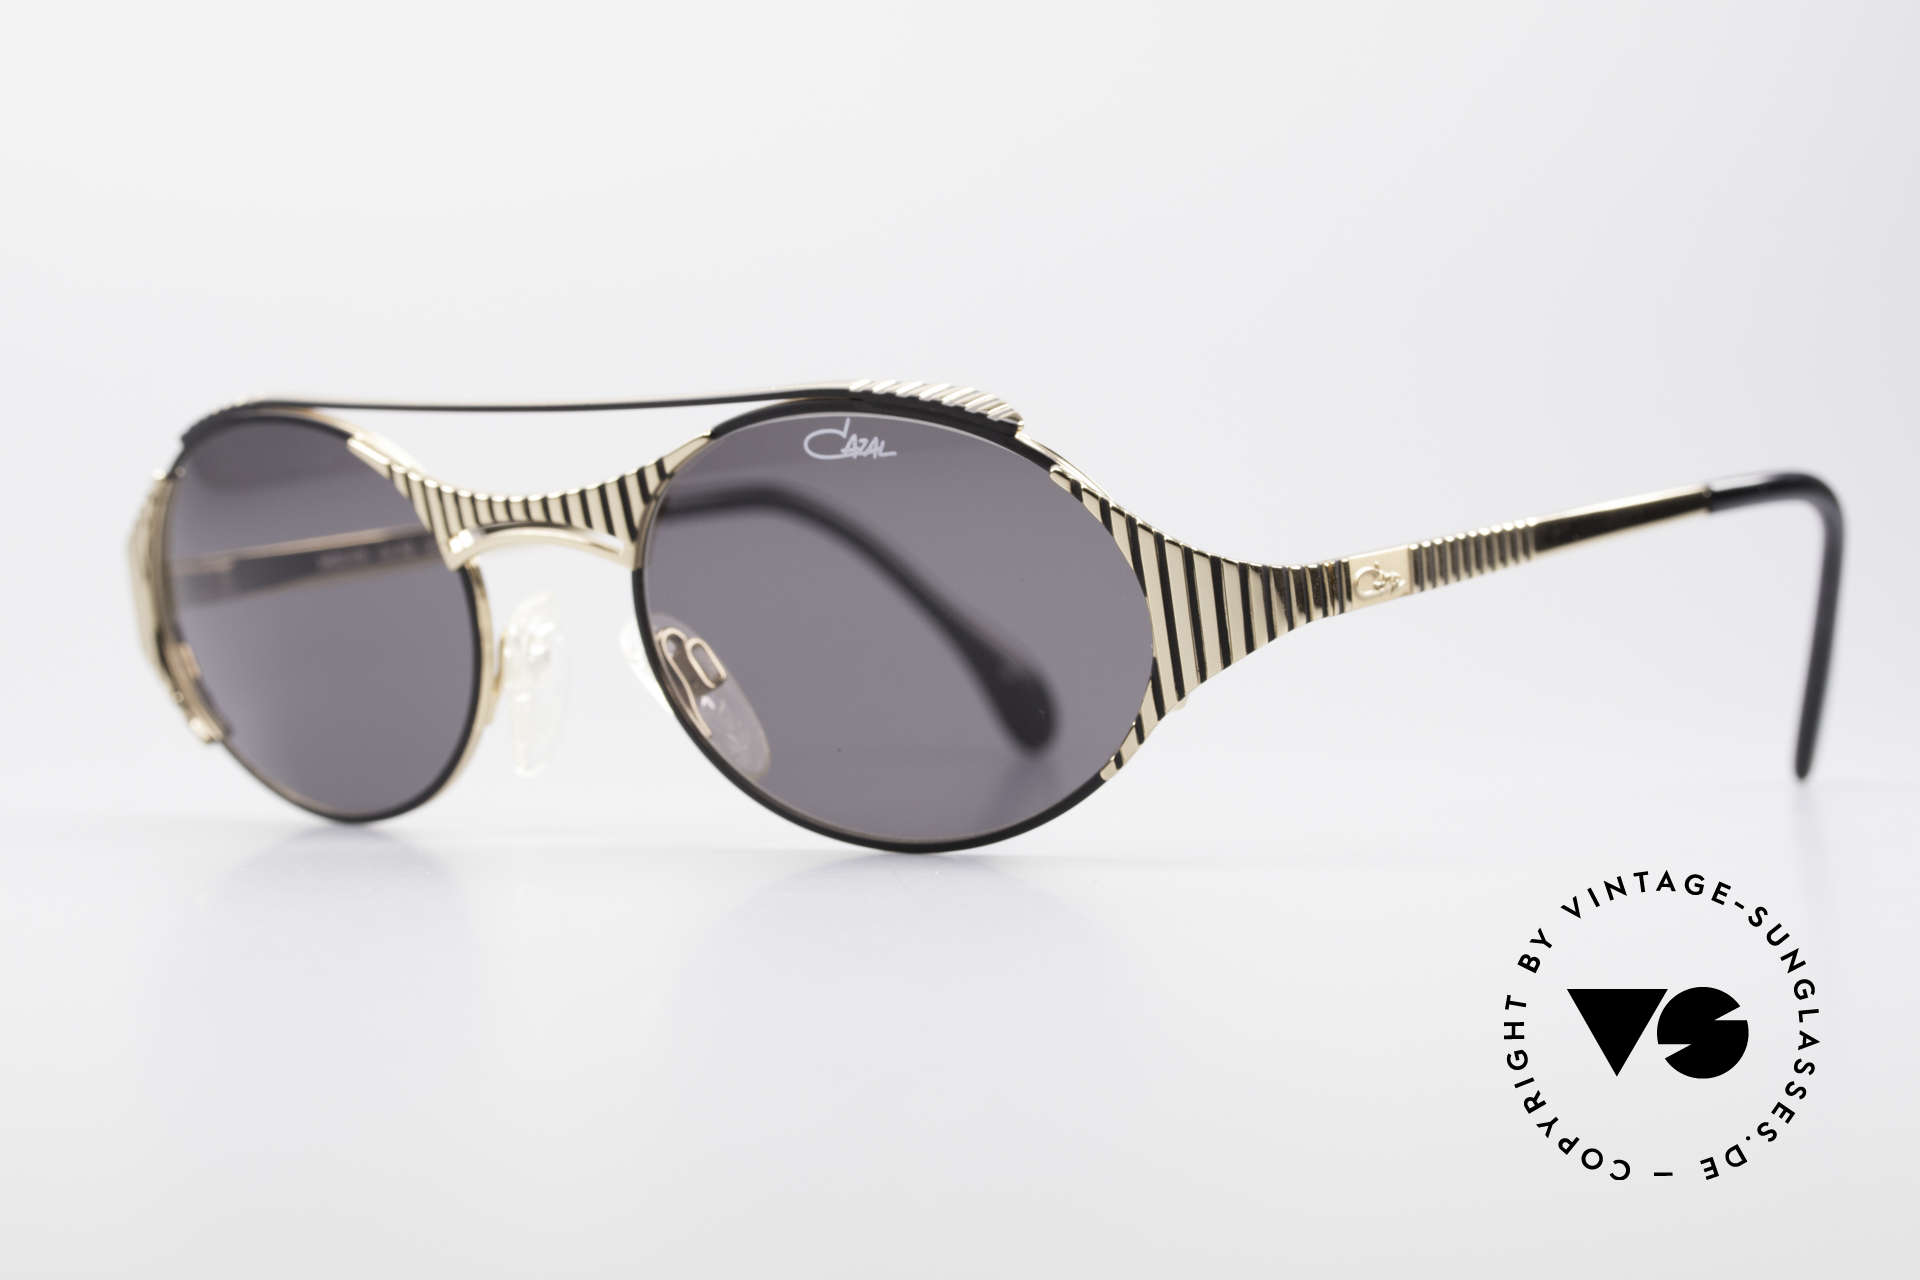 Cazal 978 Rare 90's Designer Sunglasses, sophisticated frame-design (gold with black stripes), Made for Men and Women